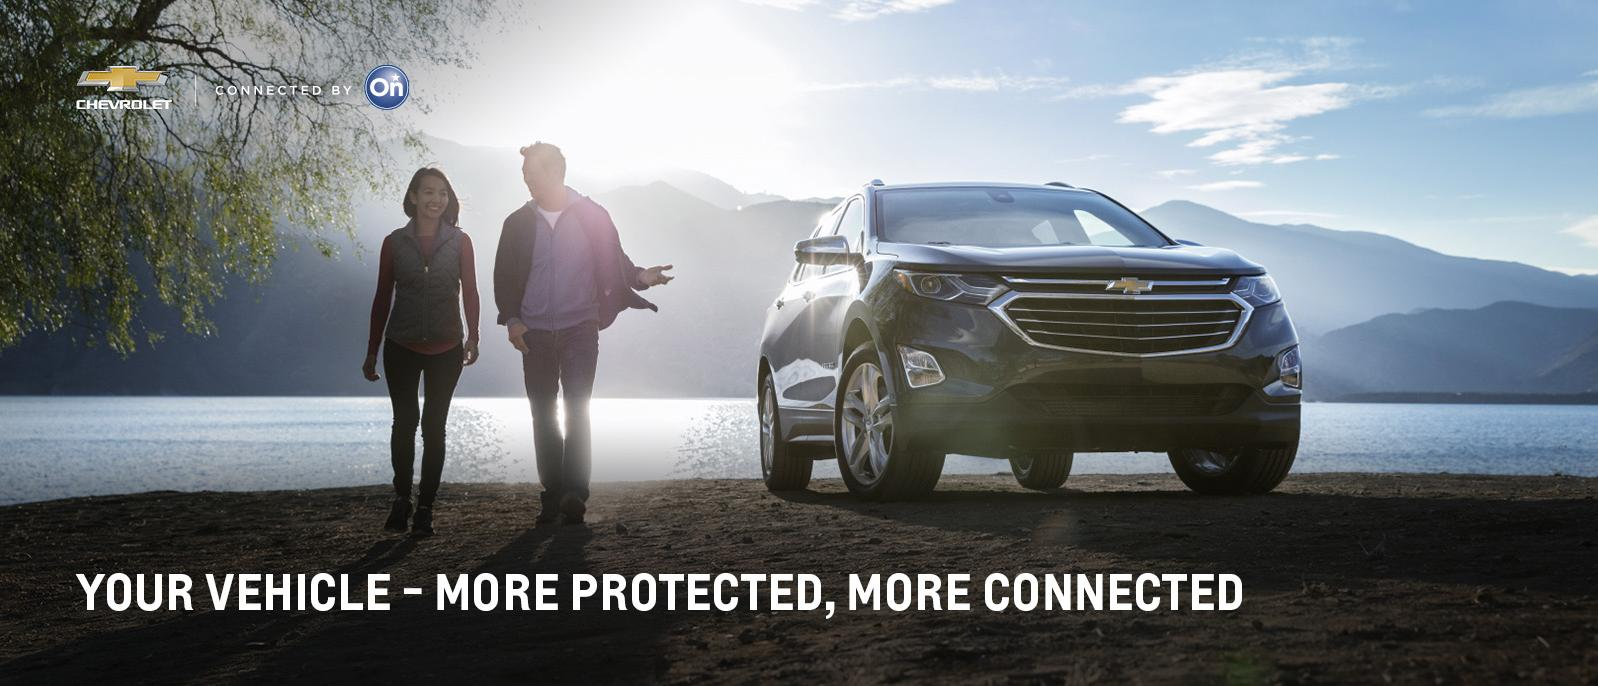 Your Vehicle - More Protected, More Connected